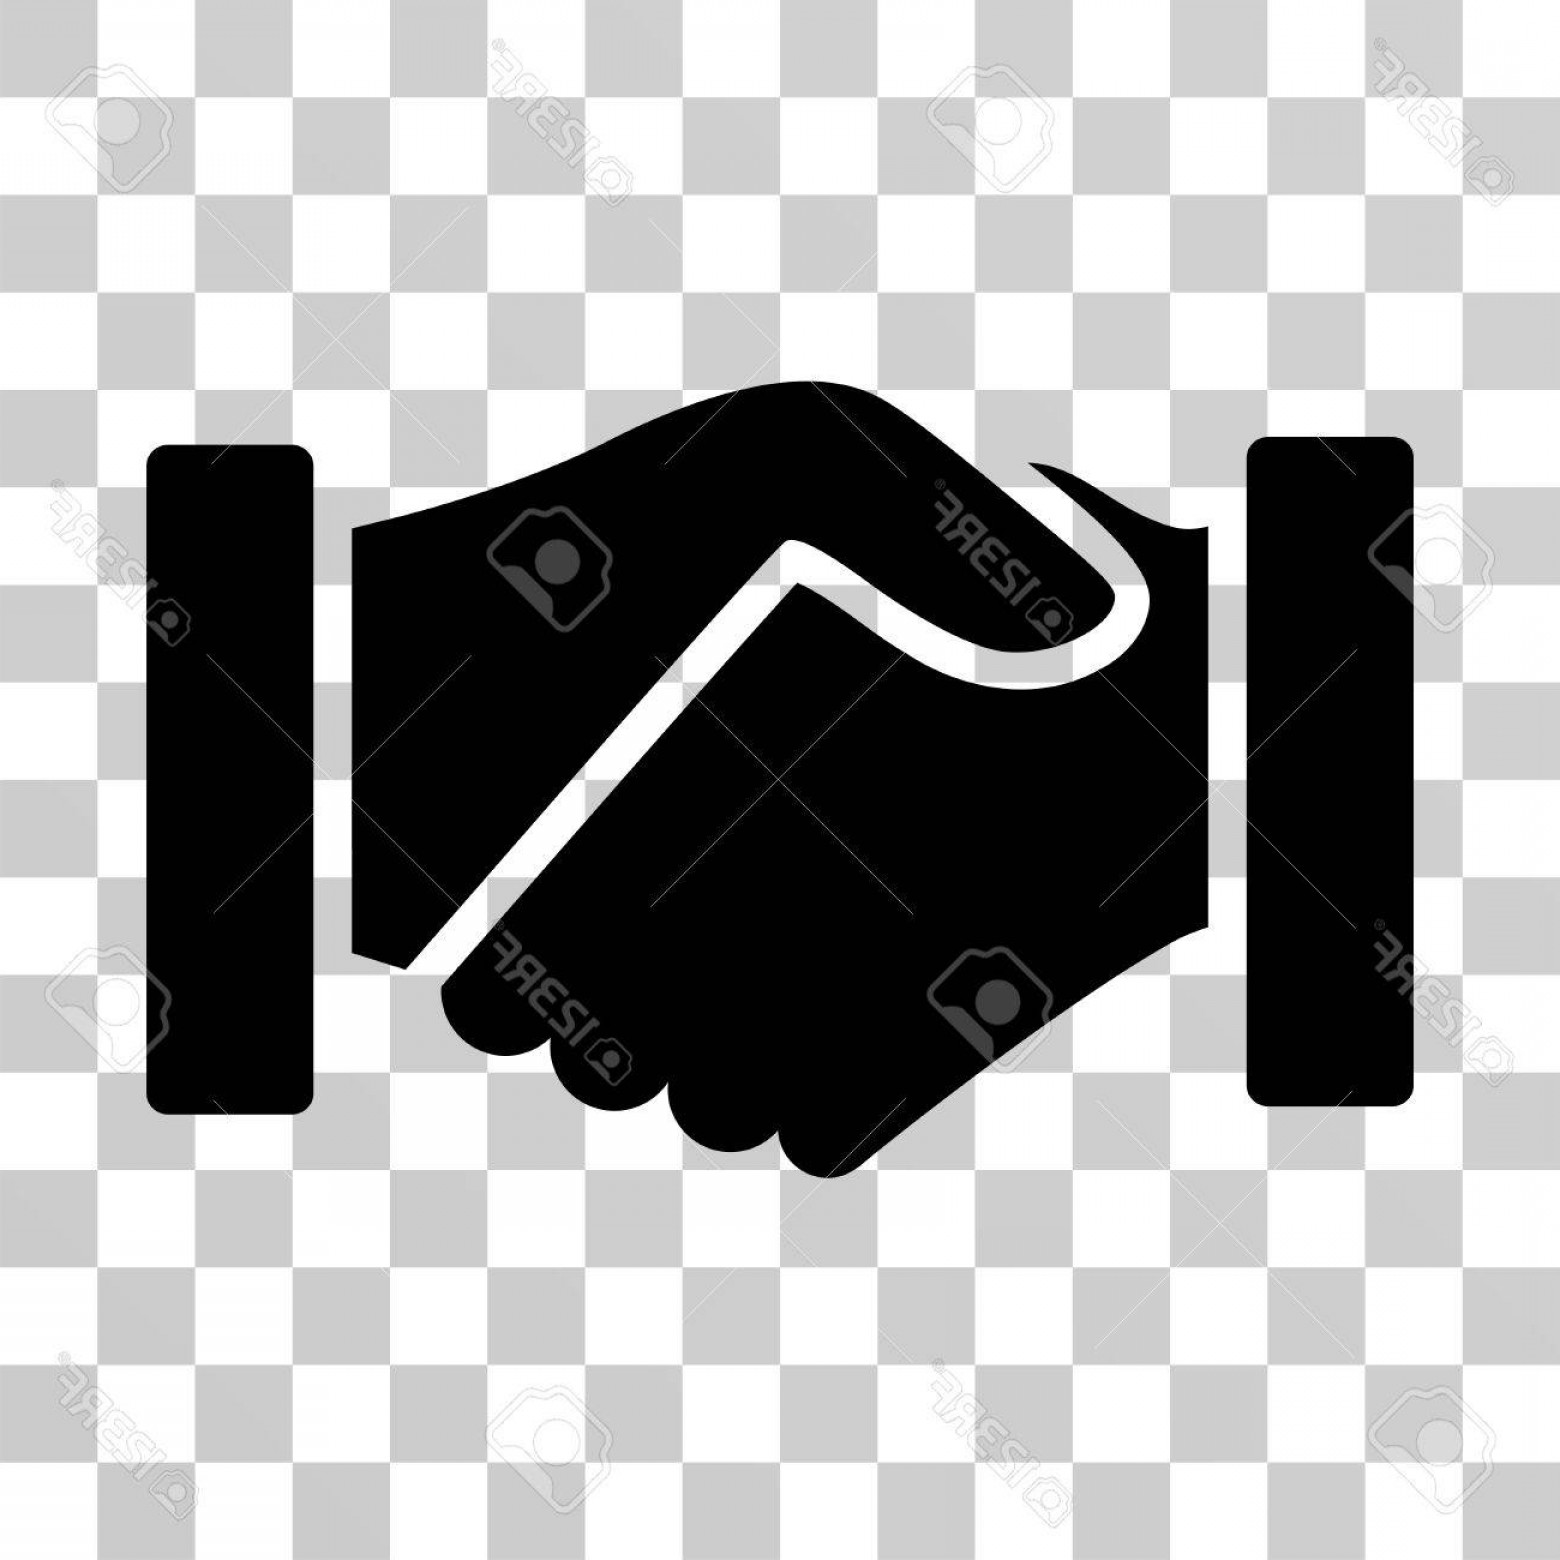 Handshake Clip Art Vector: Photostock Vector Acquisition Handshake Icon Vector Illustration Style Is Flat Iconic Symbol Black Color Transparent B